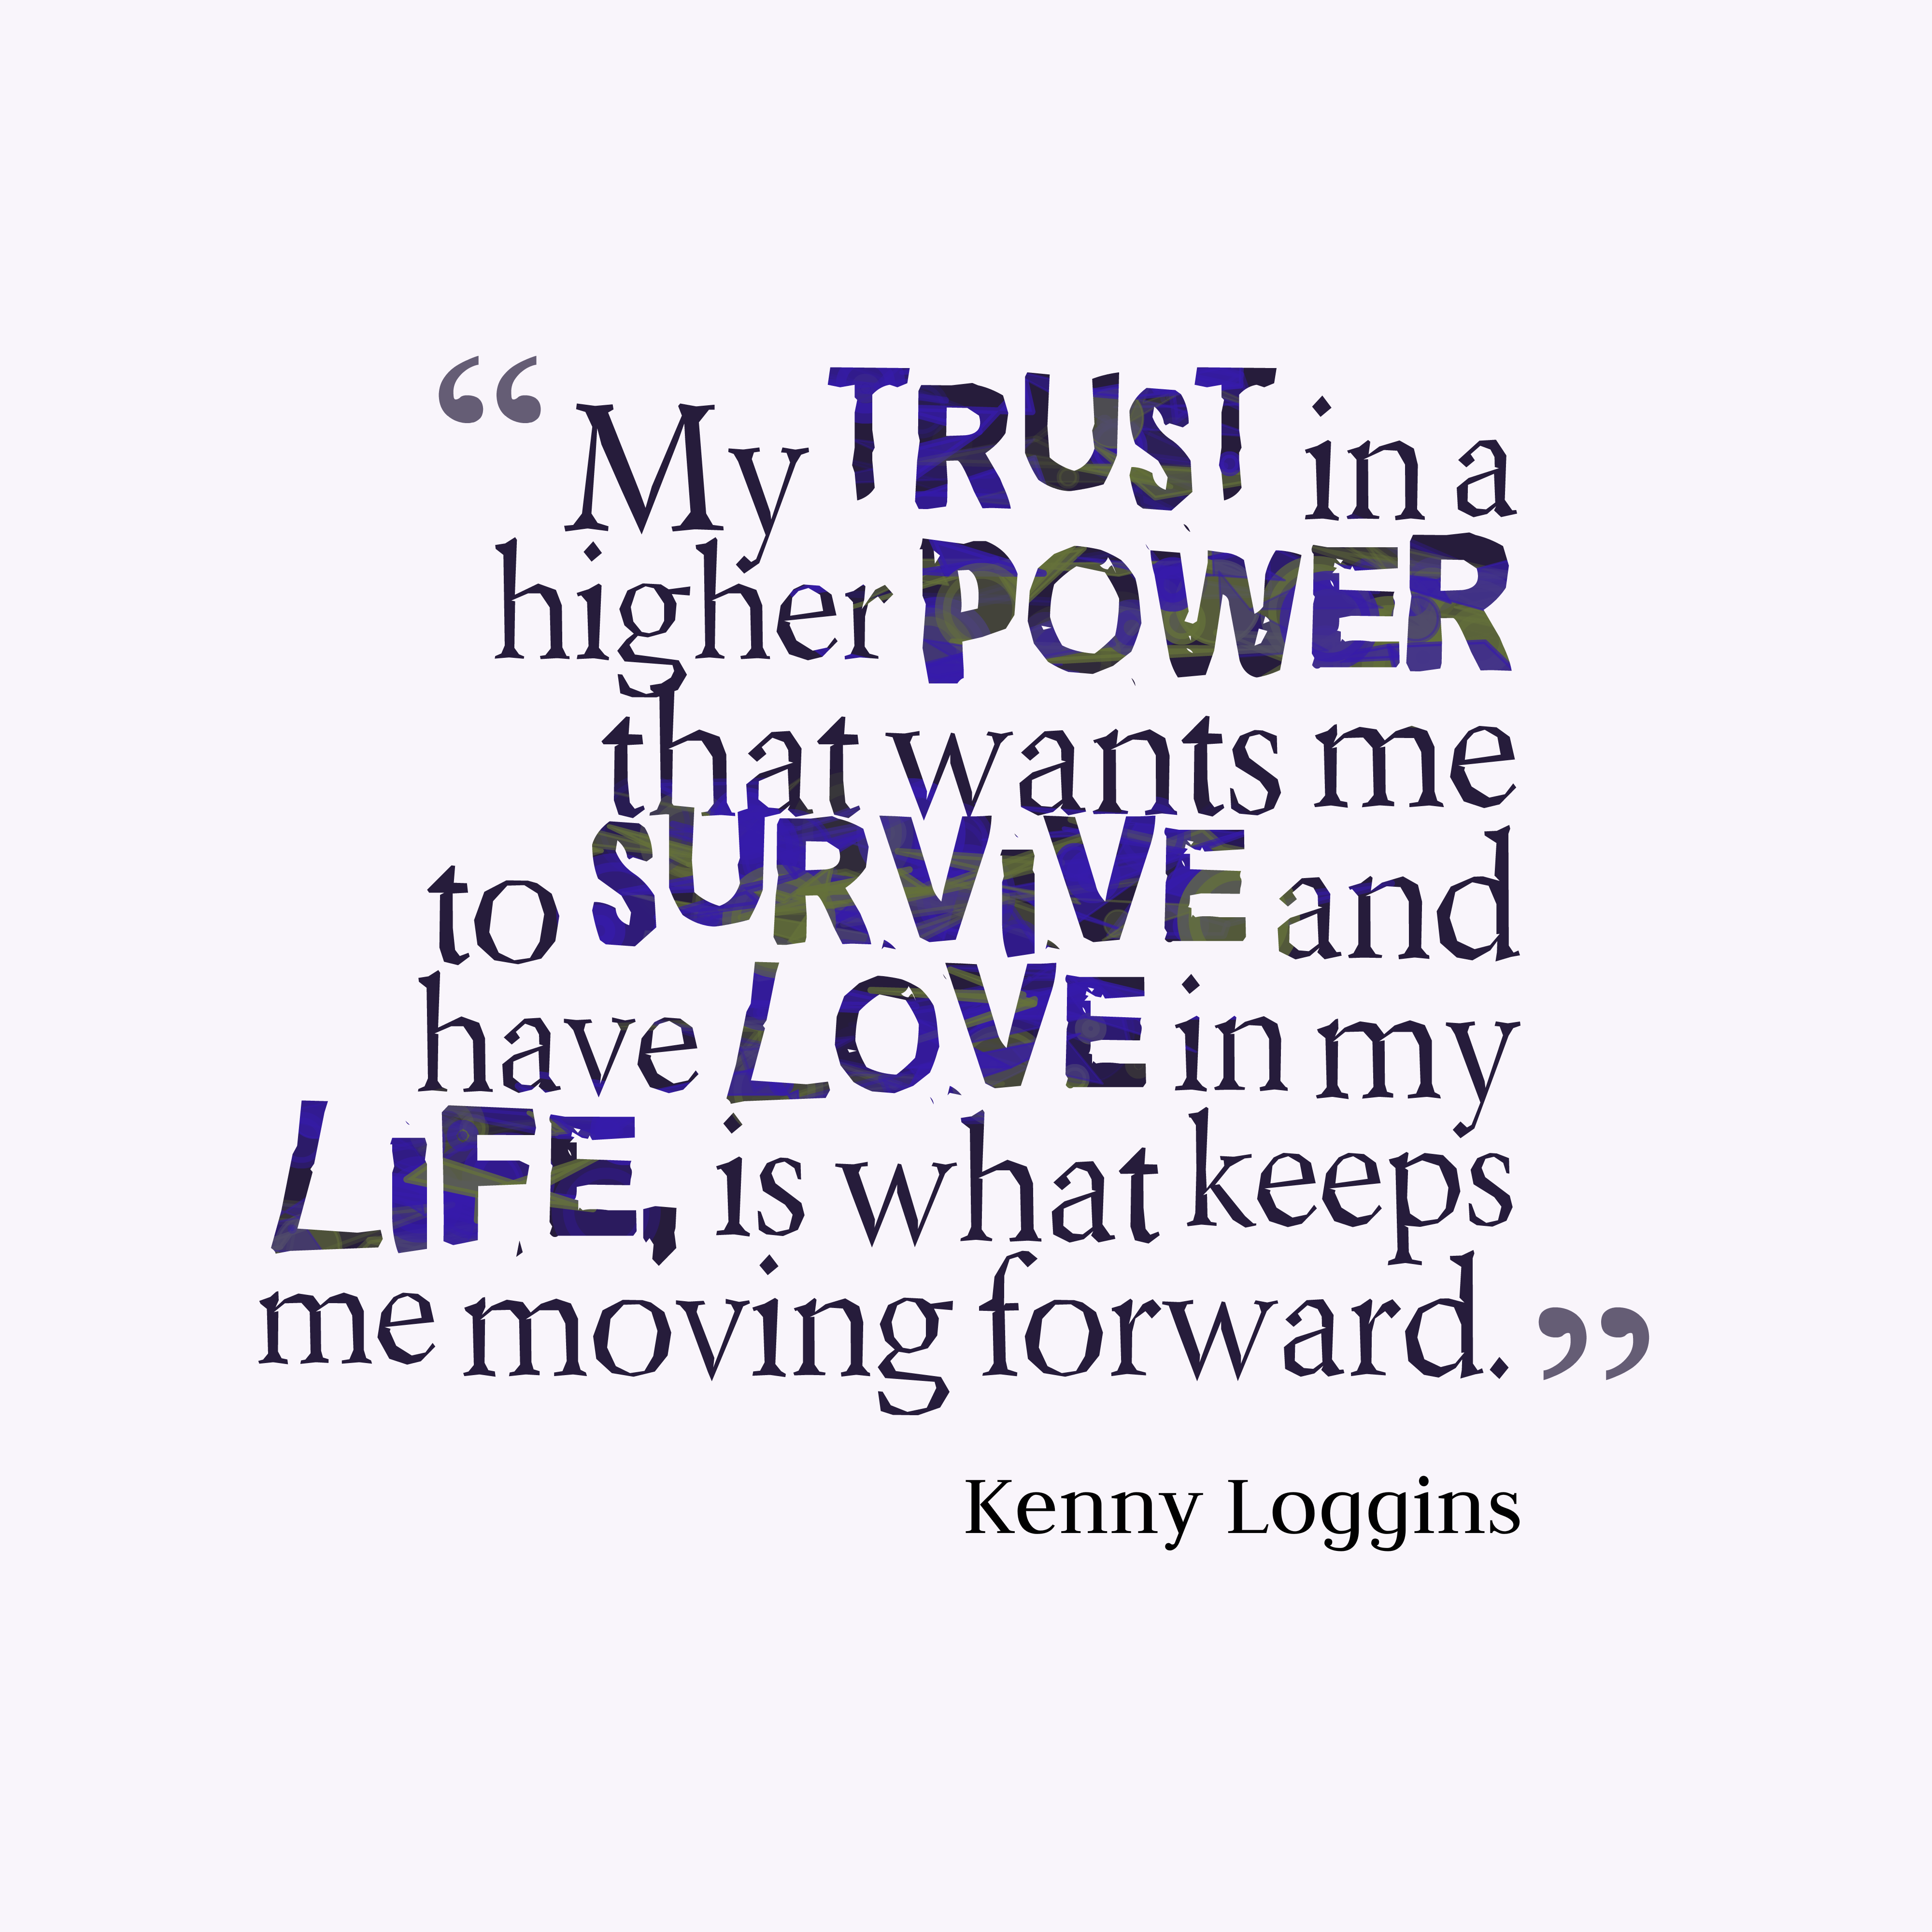 Quotes image of My trust in a higher power that wants me to survive and have love in my life, is what keeps me moving forward.